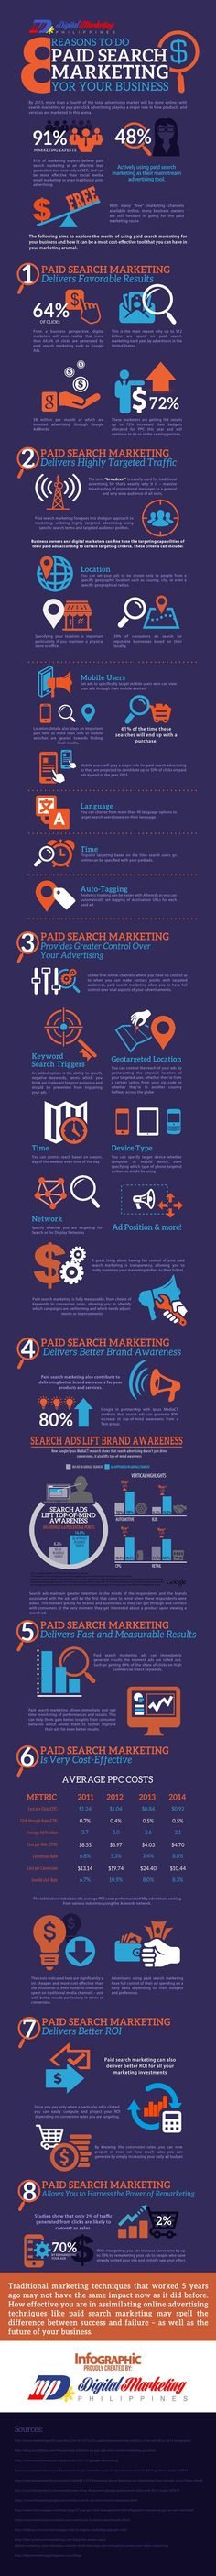 What Are 8 Reasons You Need To Do Paid Search Marketing For Lead Generation Infographic Marketing Digital, E-mail Marketing, Marketing And Advertising, Online Marketing, Business Marketing, Internet Marketing, Online Advertising, Affiliate Marketing, Info Board